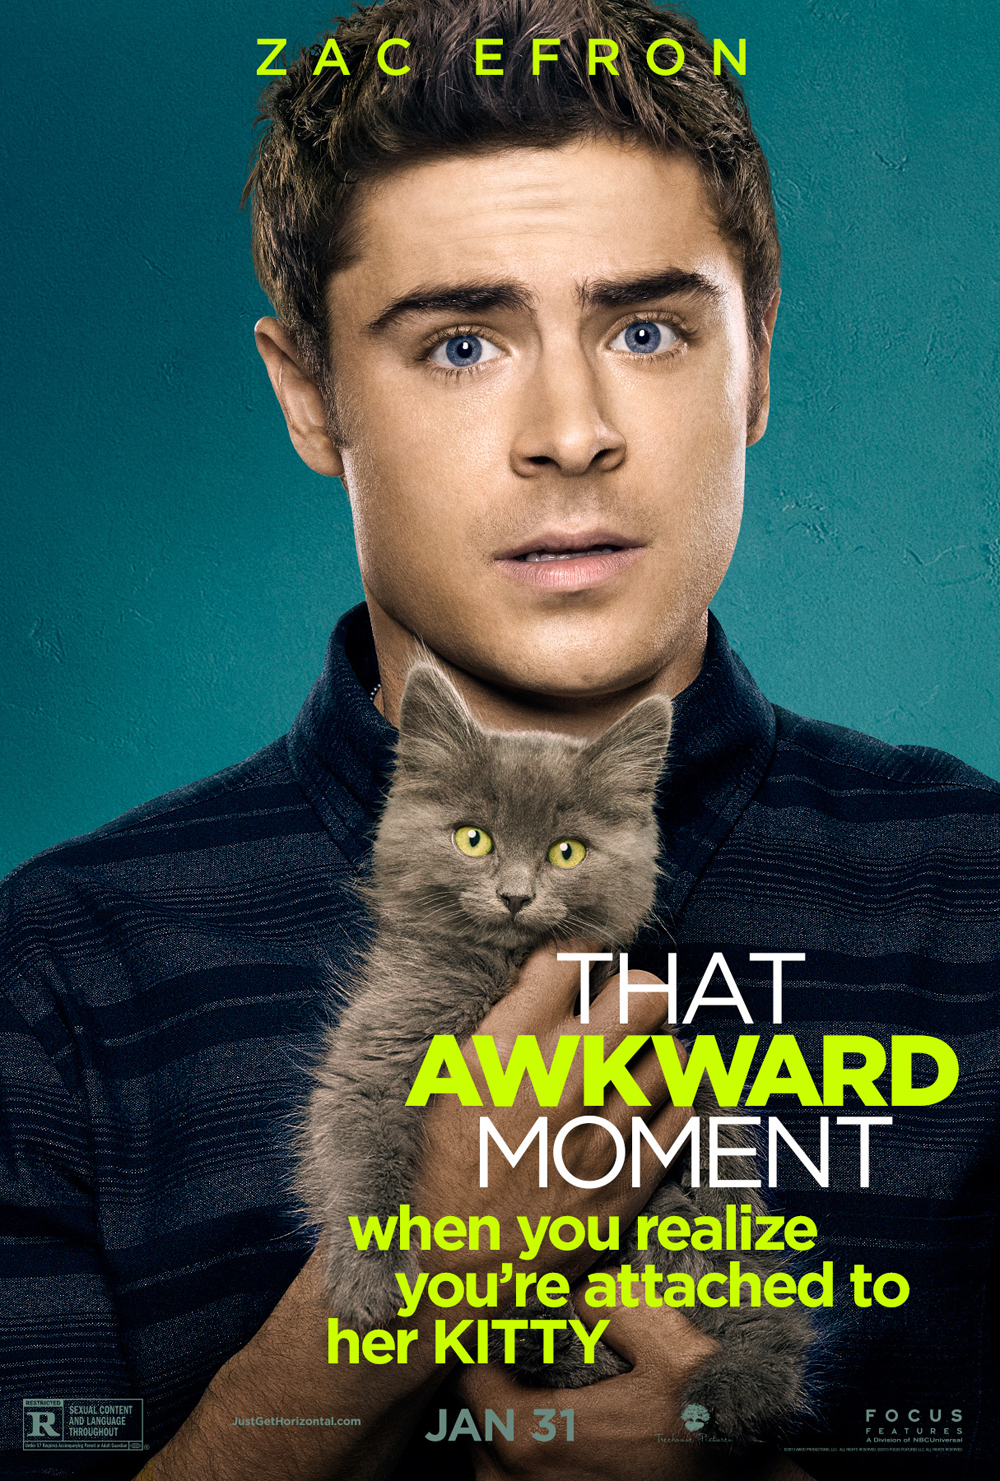 That Moment When Ghetto Redhot Yourspecial Cousin Gets An: That Awkward Moment Review: A Mess